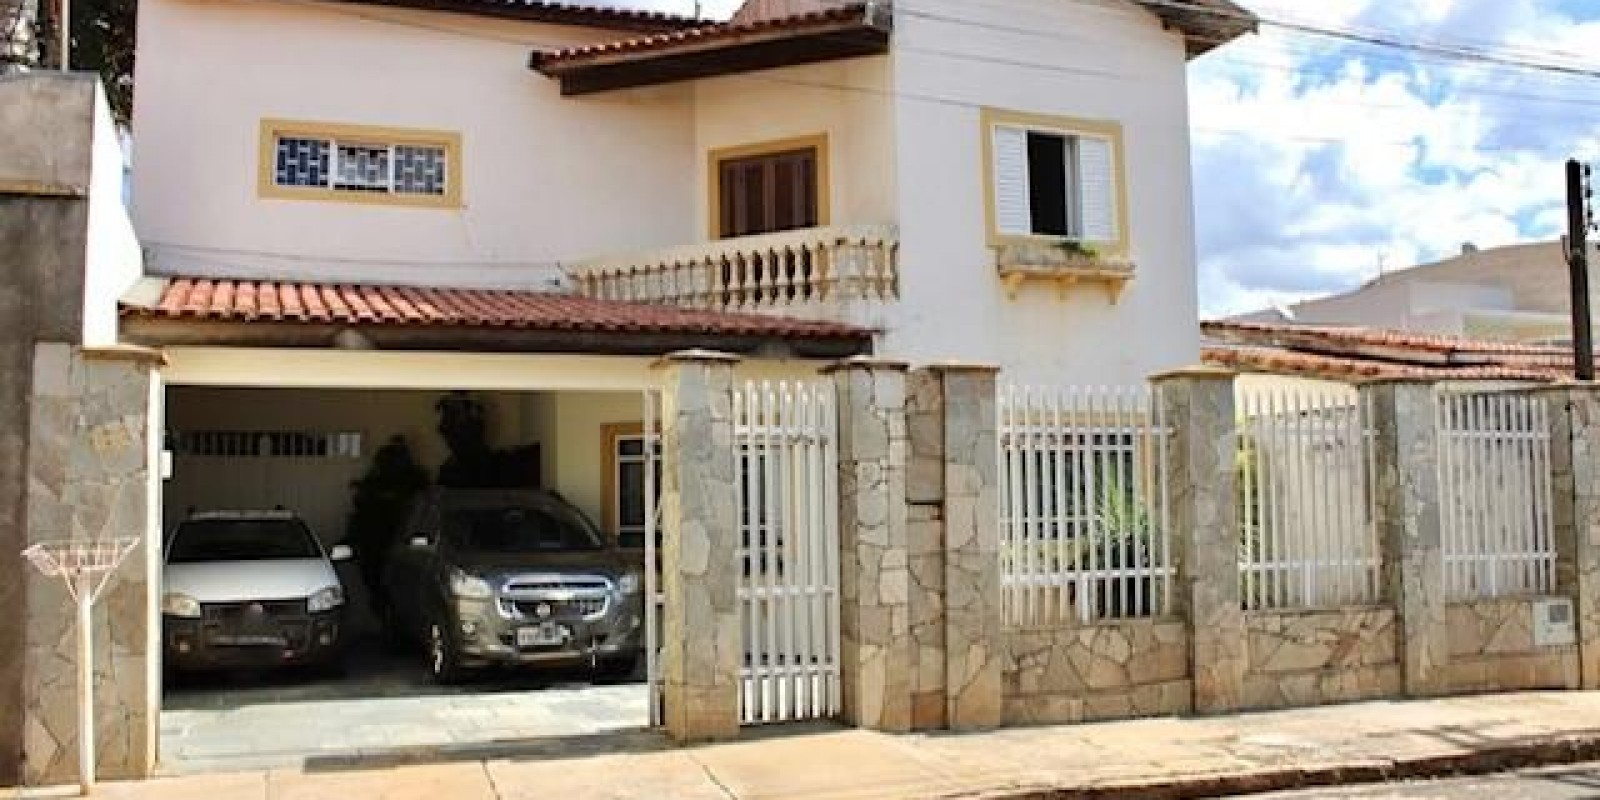 Casa a Venda no Jd Boa Vista em Avaré SP